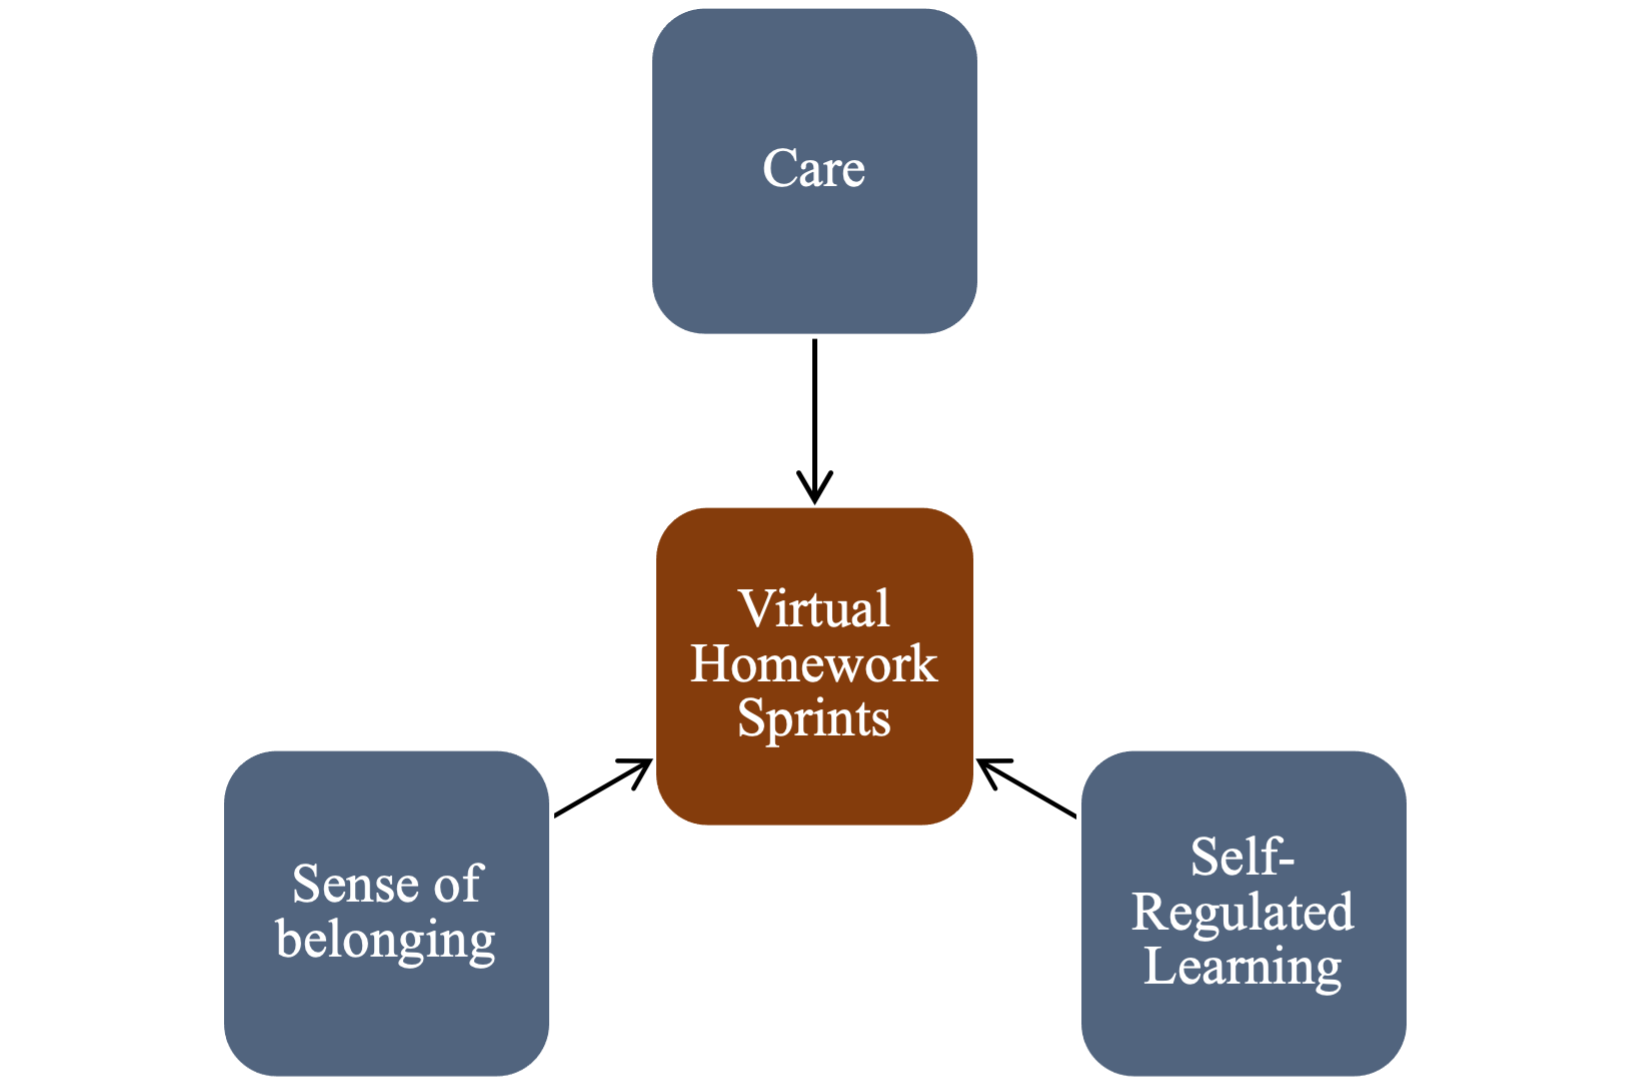 """A diagram made up of 4 boxes. The main box in the middle is red and labeled """"Virtual Homework Sprints"""". Three boxes above and on the side of the middle red box then have arrows pointing toward the middle box and are labeled: Care, Sense of Belonging, and Self-Regulated Learning."""